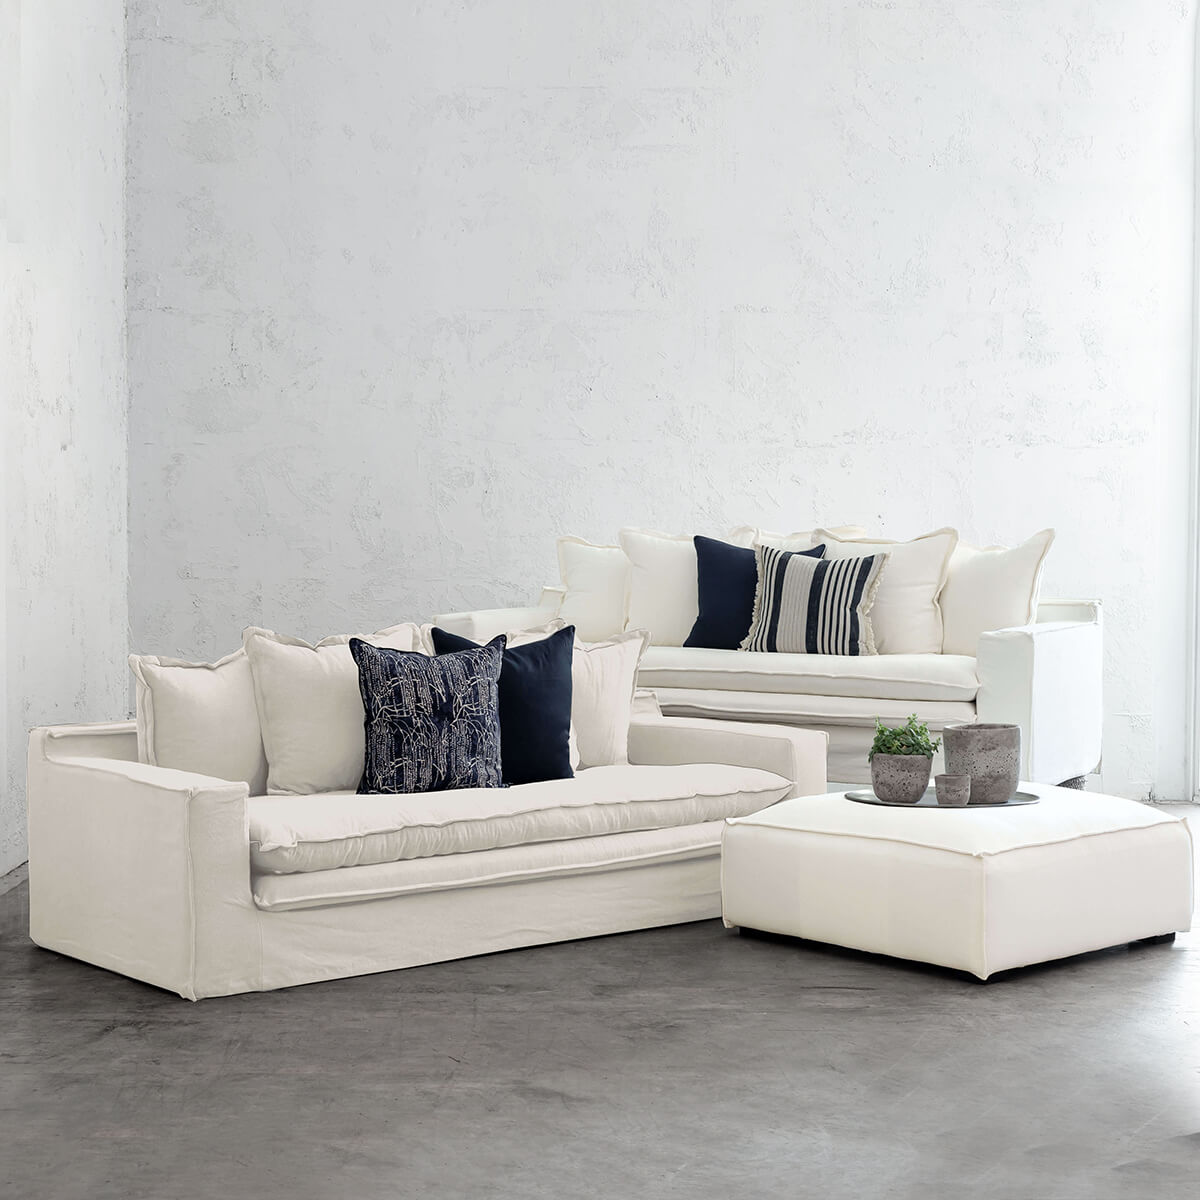 GREENPORT HAMPTONS SLIP COVER 2 x SOFA + OTTOMAN PACKAGE  |  CASPER WHITE